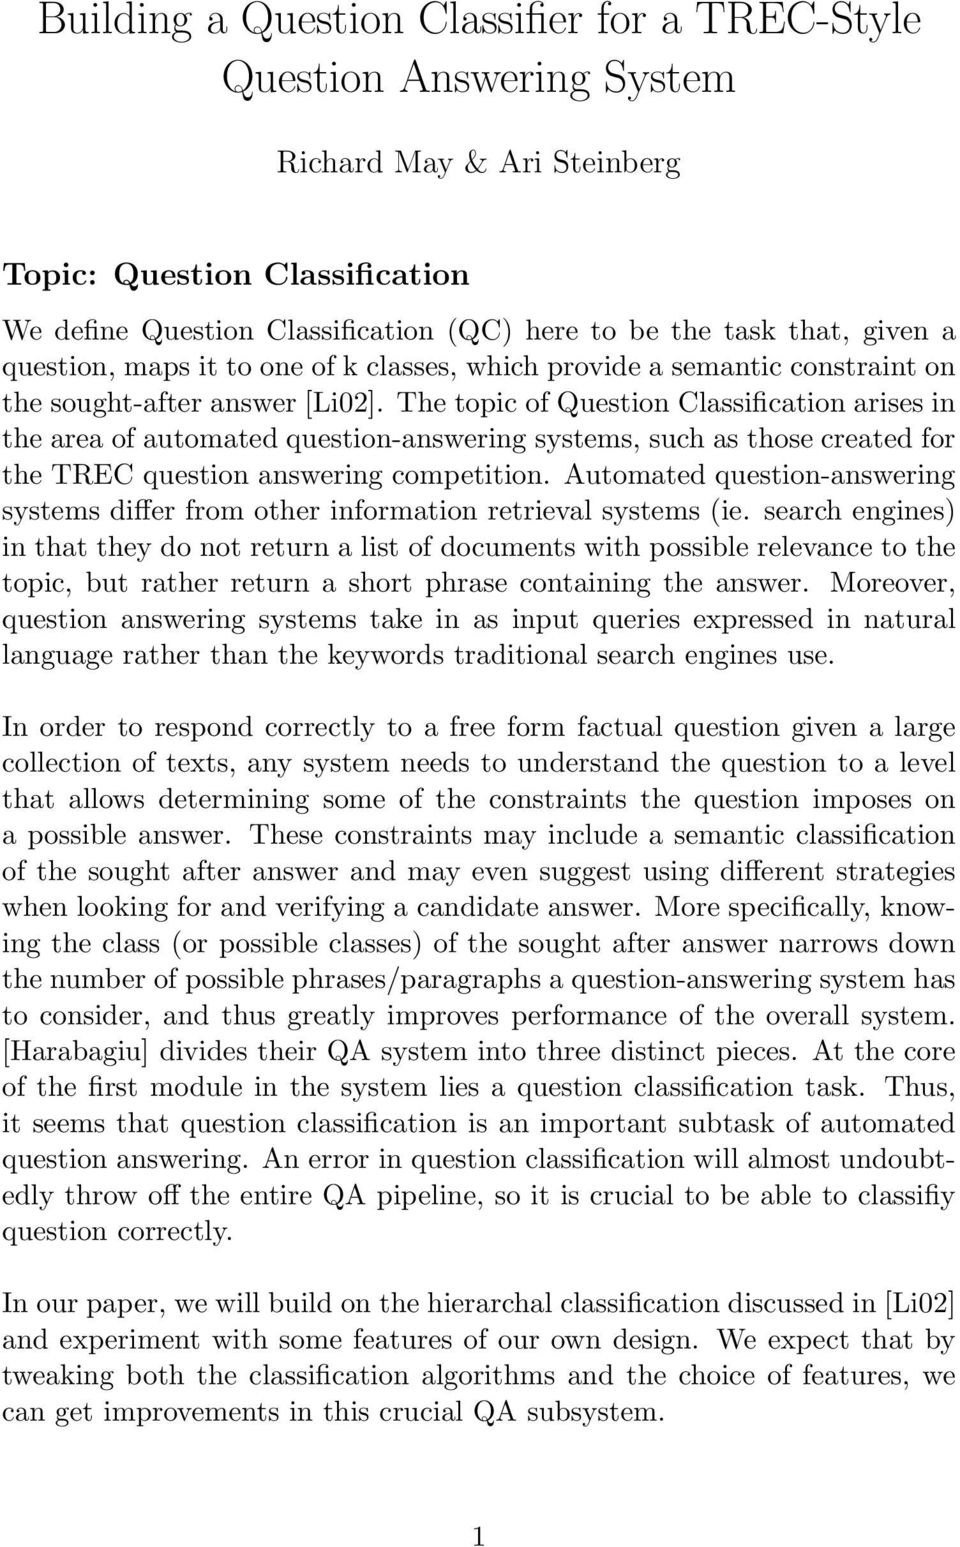 The topic of Question Classification arises in the area of automated question-answering systems, such as those created for the TREC question answering competition.